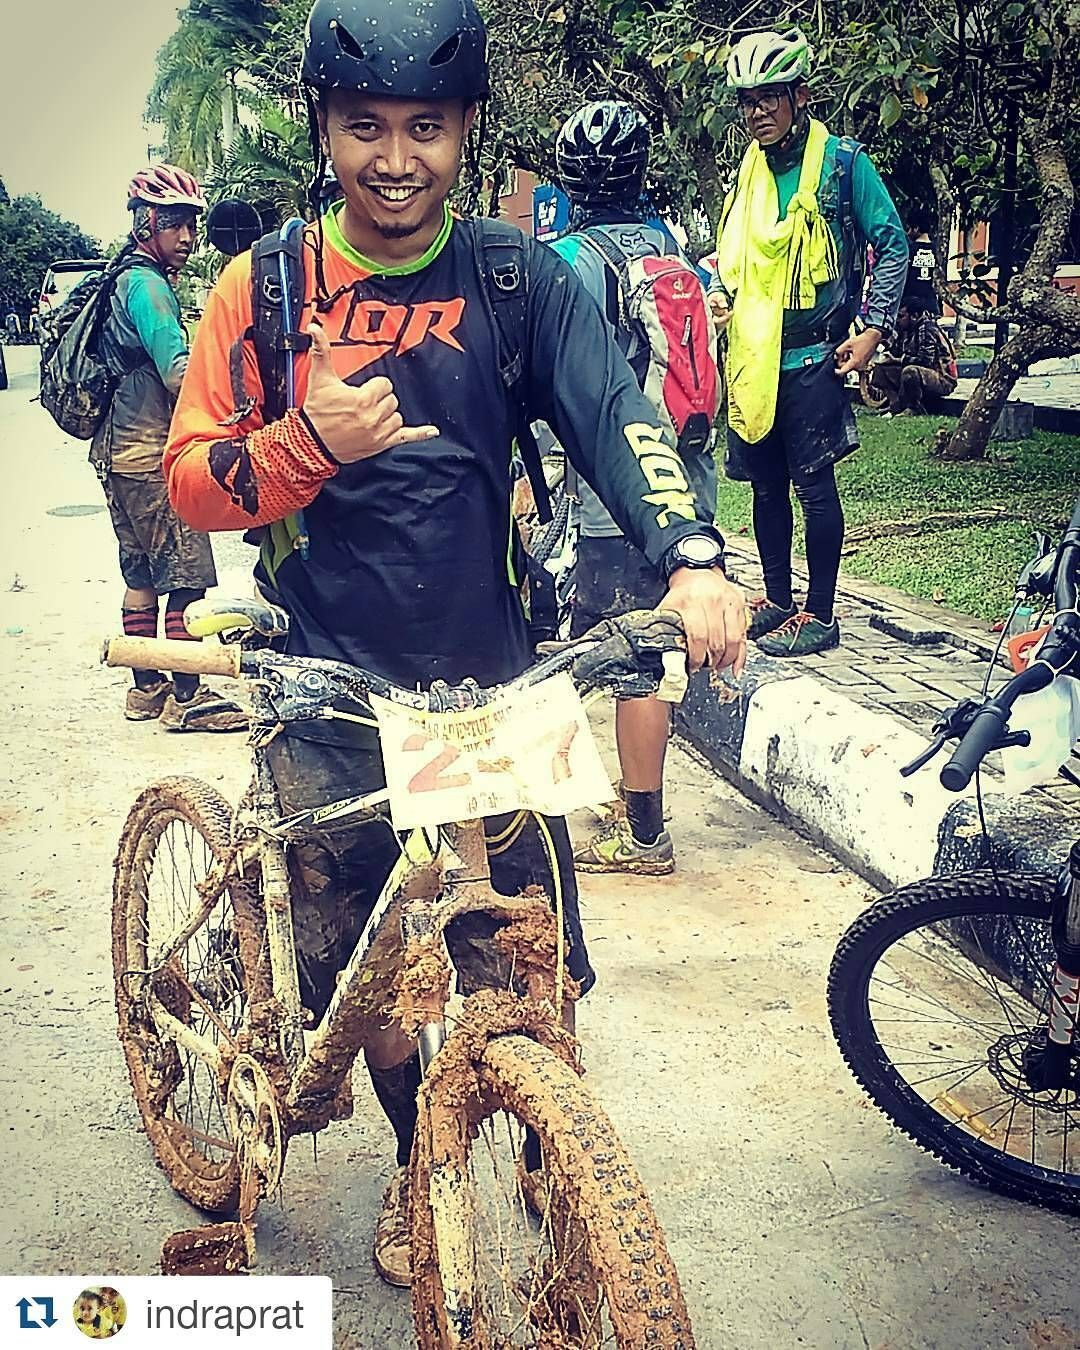 #Repost @indraprat  buseeeeeeeet XD  No podium no medal  at least i touch finished line....Treknya ganas #adventure #mtbgram #mtblife #allmountain #singletrack #pacificbike #pacificbikerider #vigilon5 #instabike #mtbbalikpapan #HUTBayangkara #pacificbikes #pacificbikerider #sepeda #sepedagunung #bersepeda #gowes #hardtail #mountainbike #mtbindonesia #crosscountry